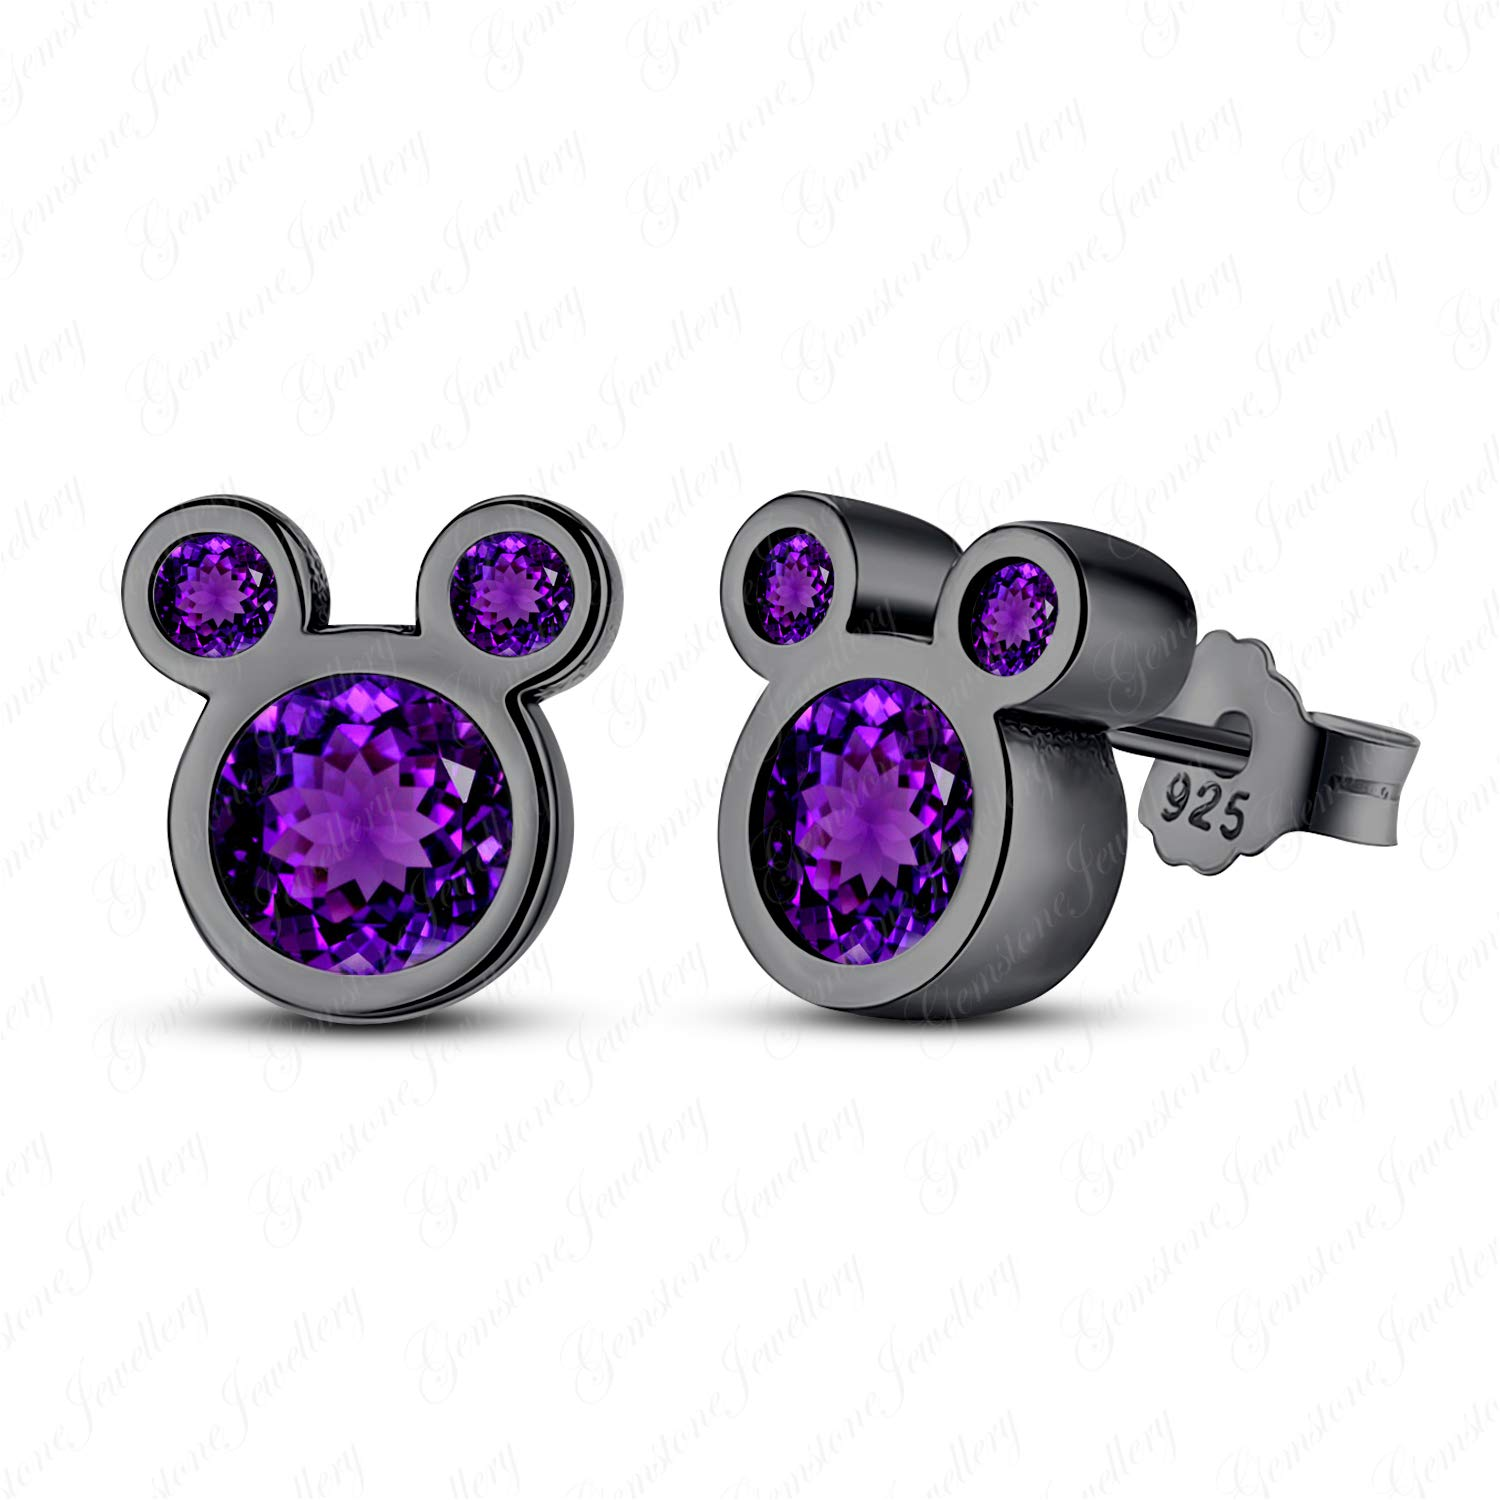 Gemstone Jewellery Micky Mouse Earrings With Purple Amethyst 14k Black Rhodium Finished Pure 925 Silver